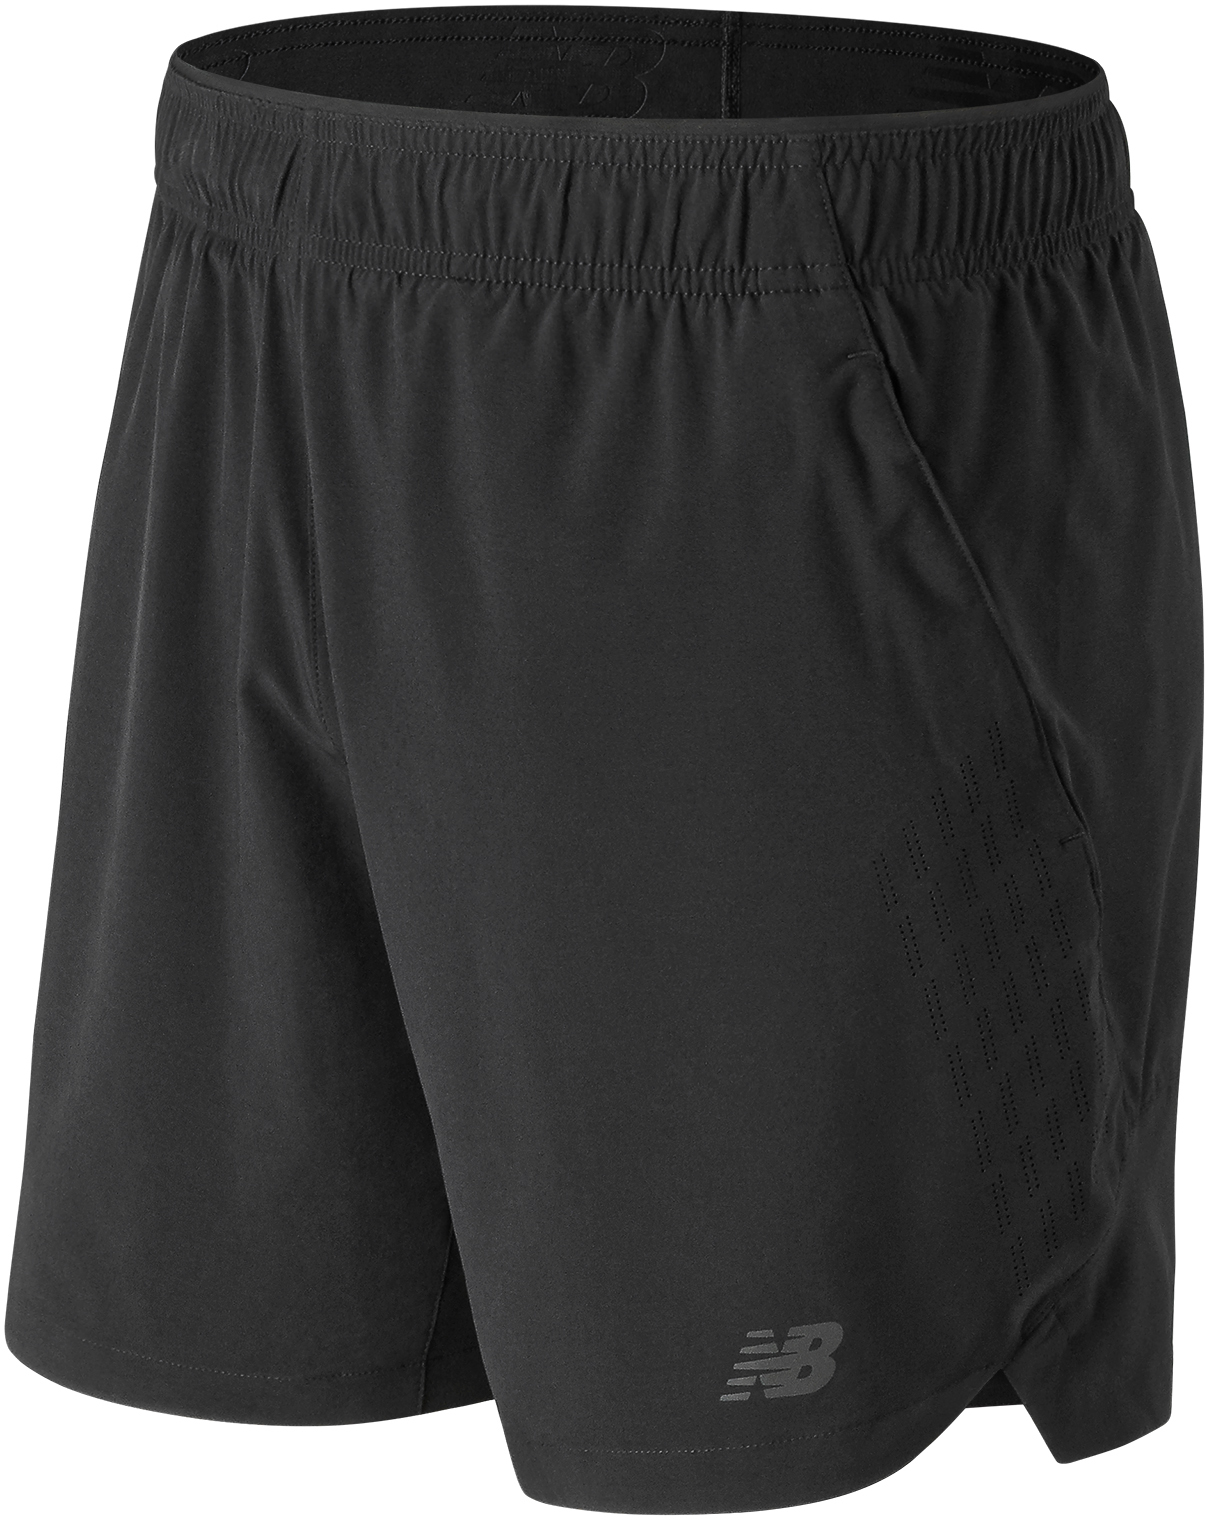 New Balance Fortitech 7in 2in1 Short | item_misc